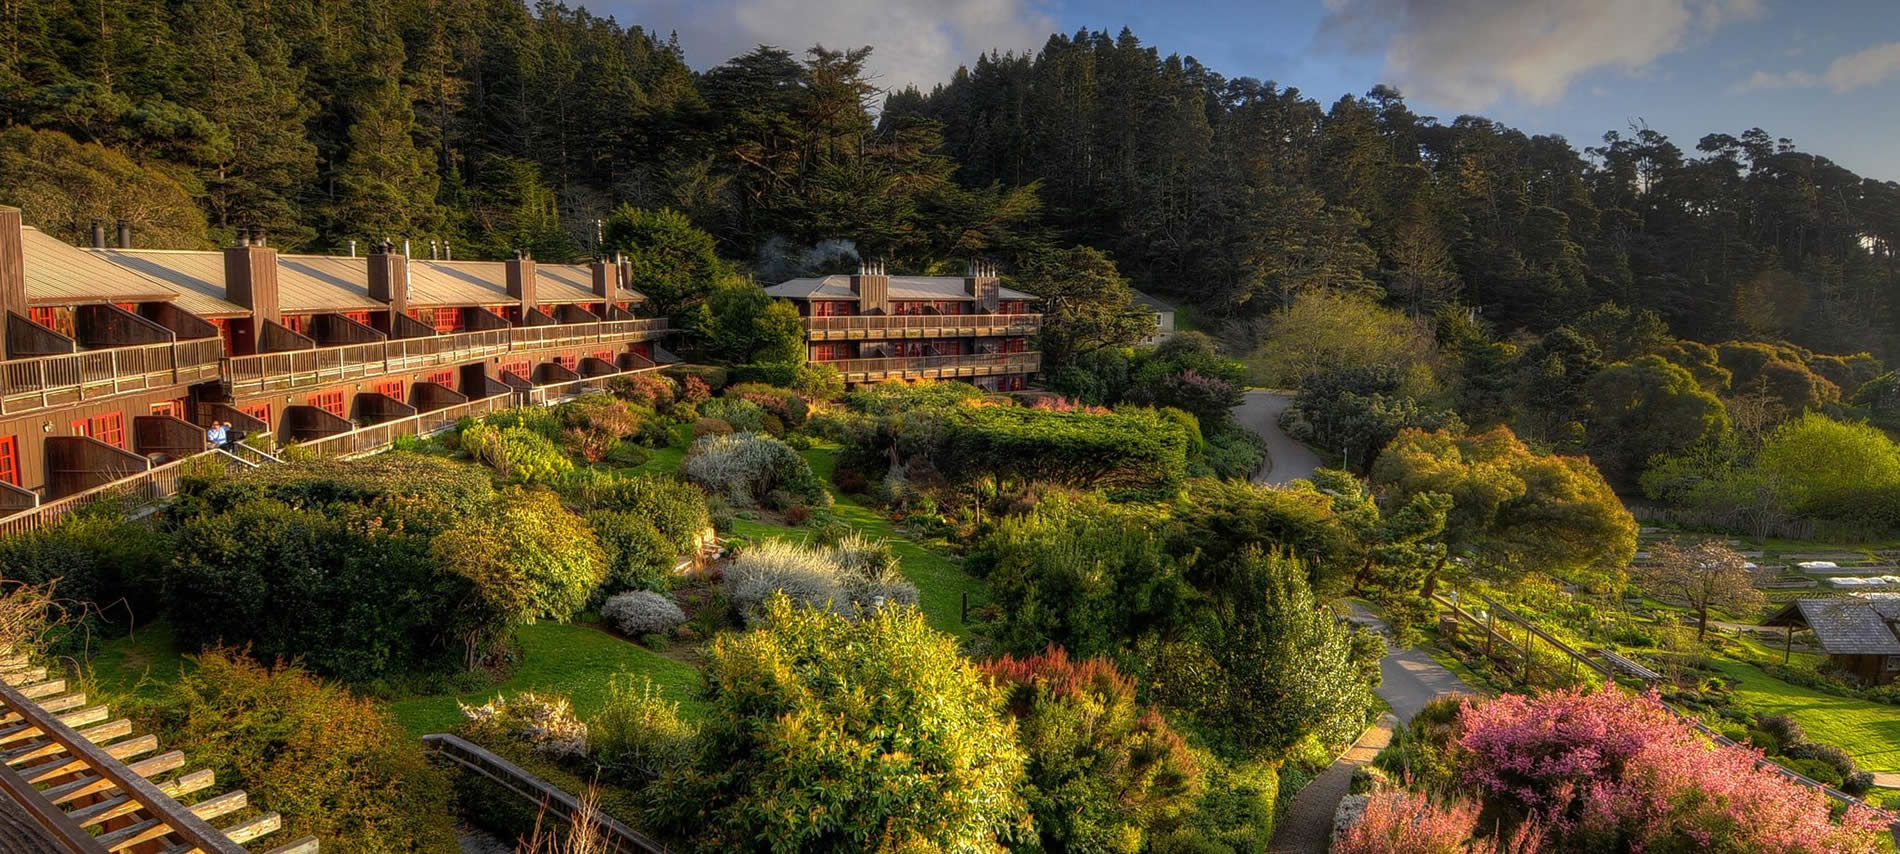 mendocino hotel and resort for group use - corporate meetings, business retreats